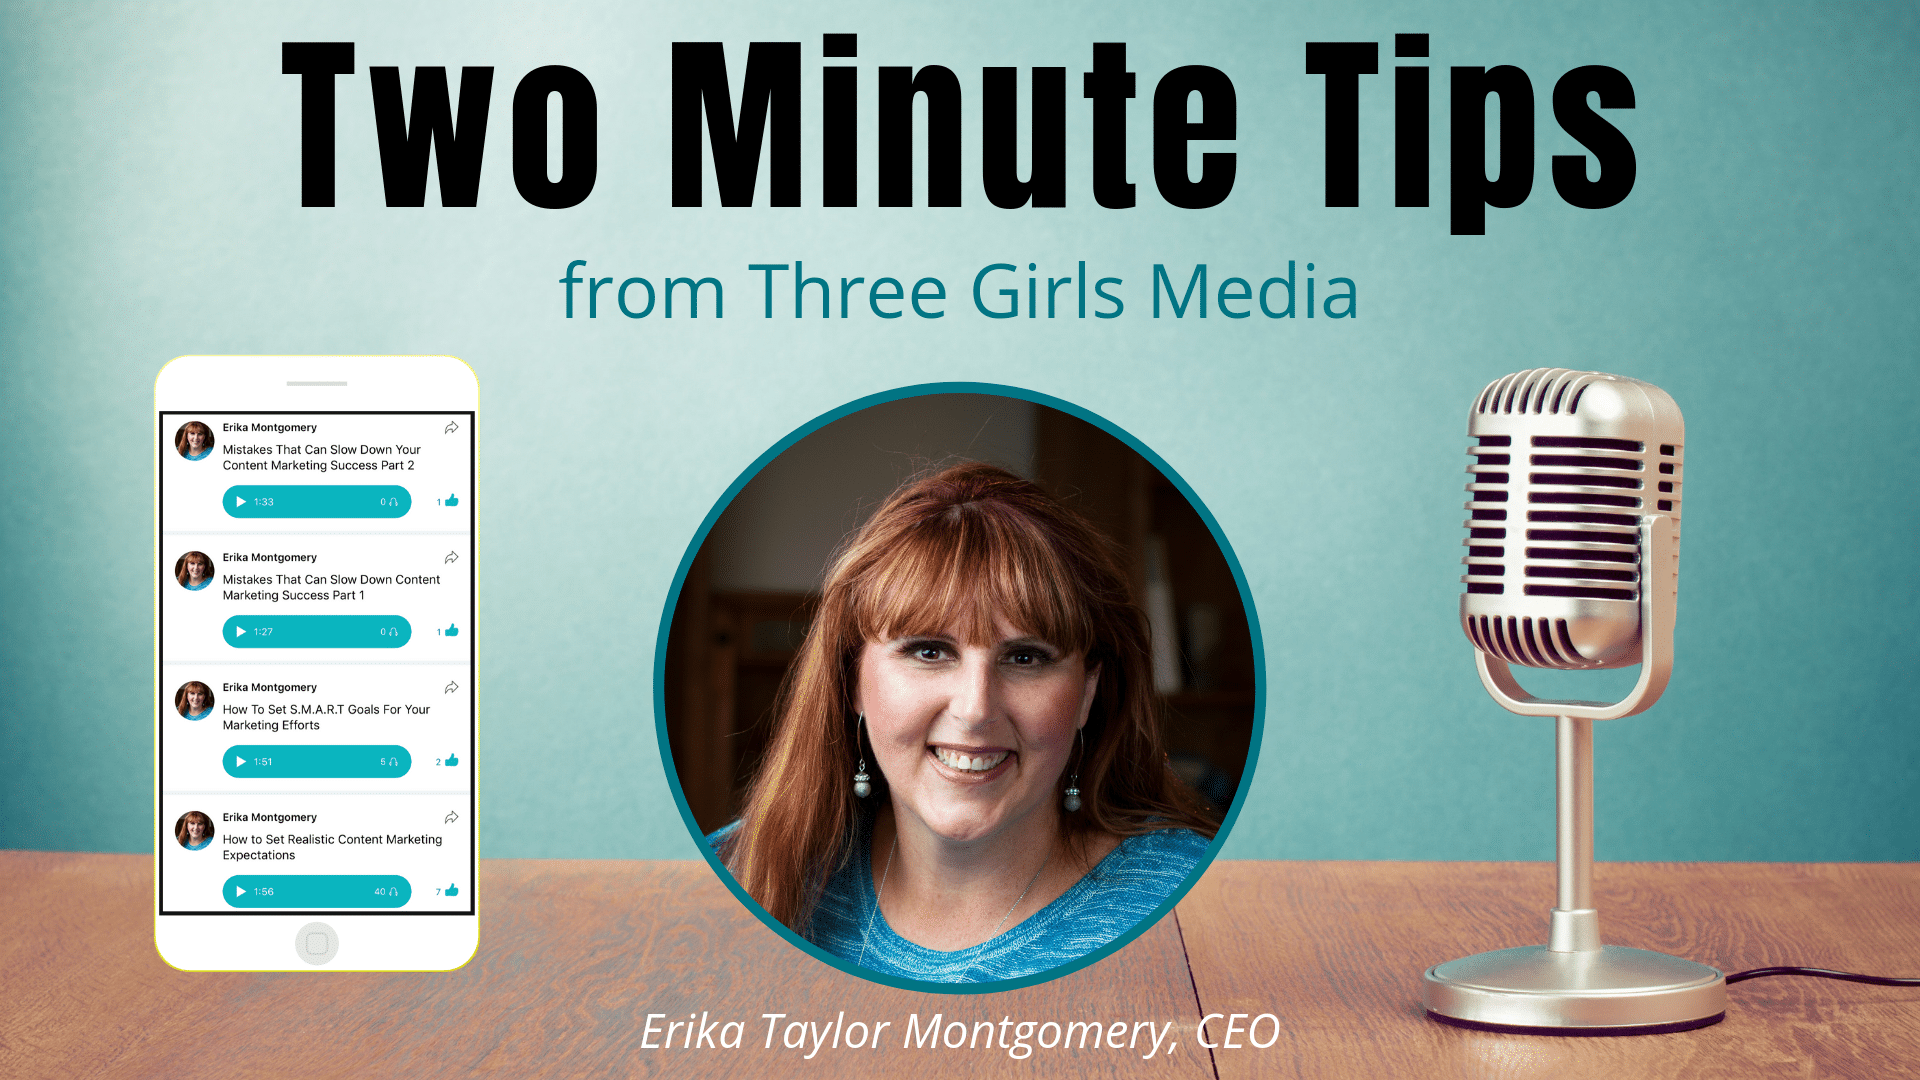 Two Minute Tips: Setting Goals and Being Competitive